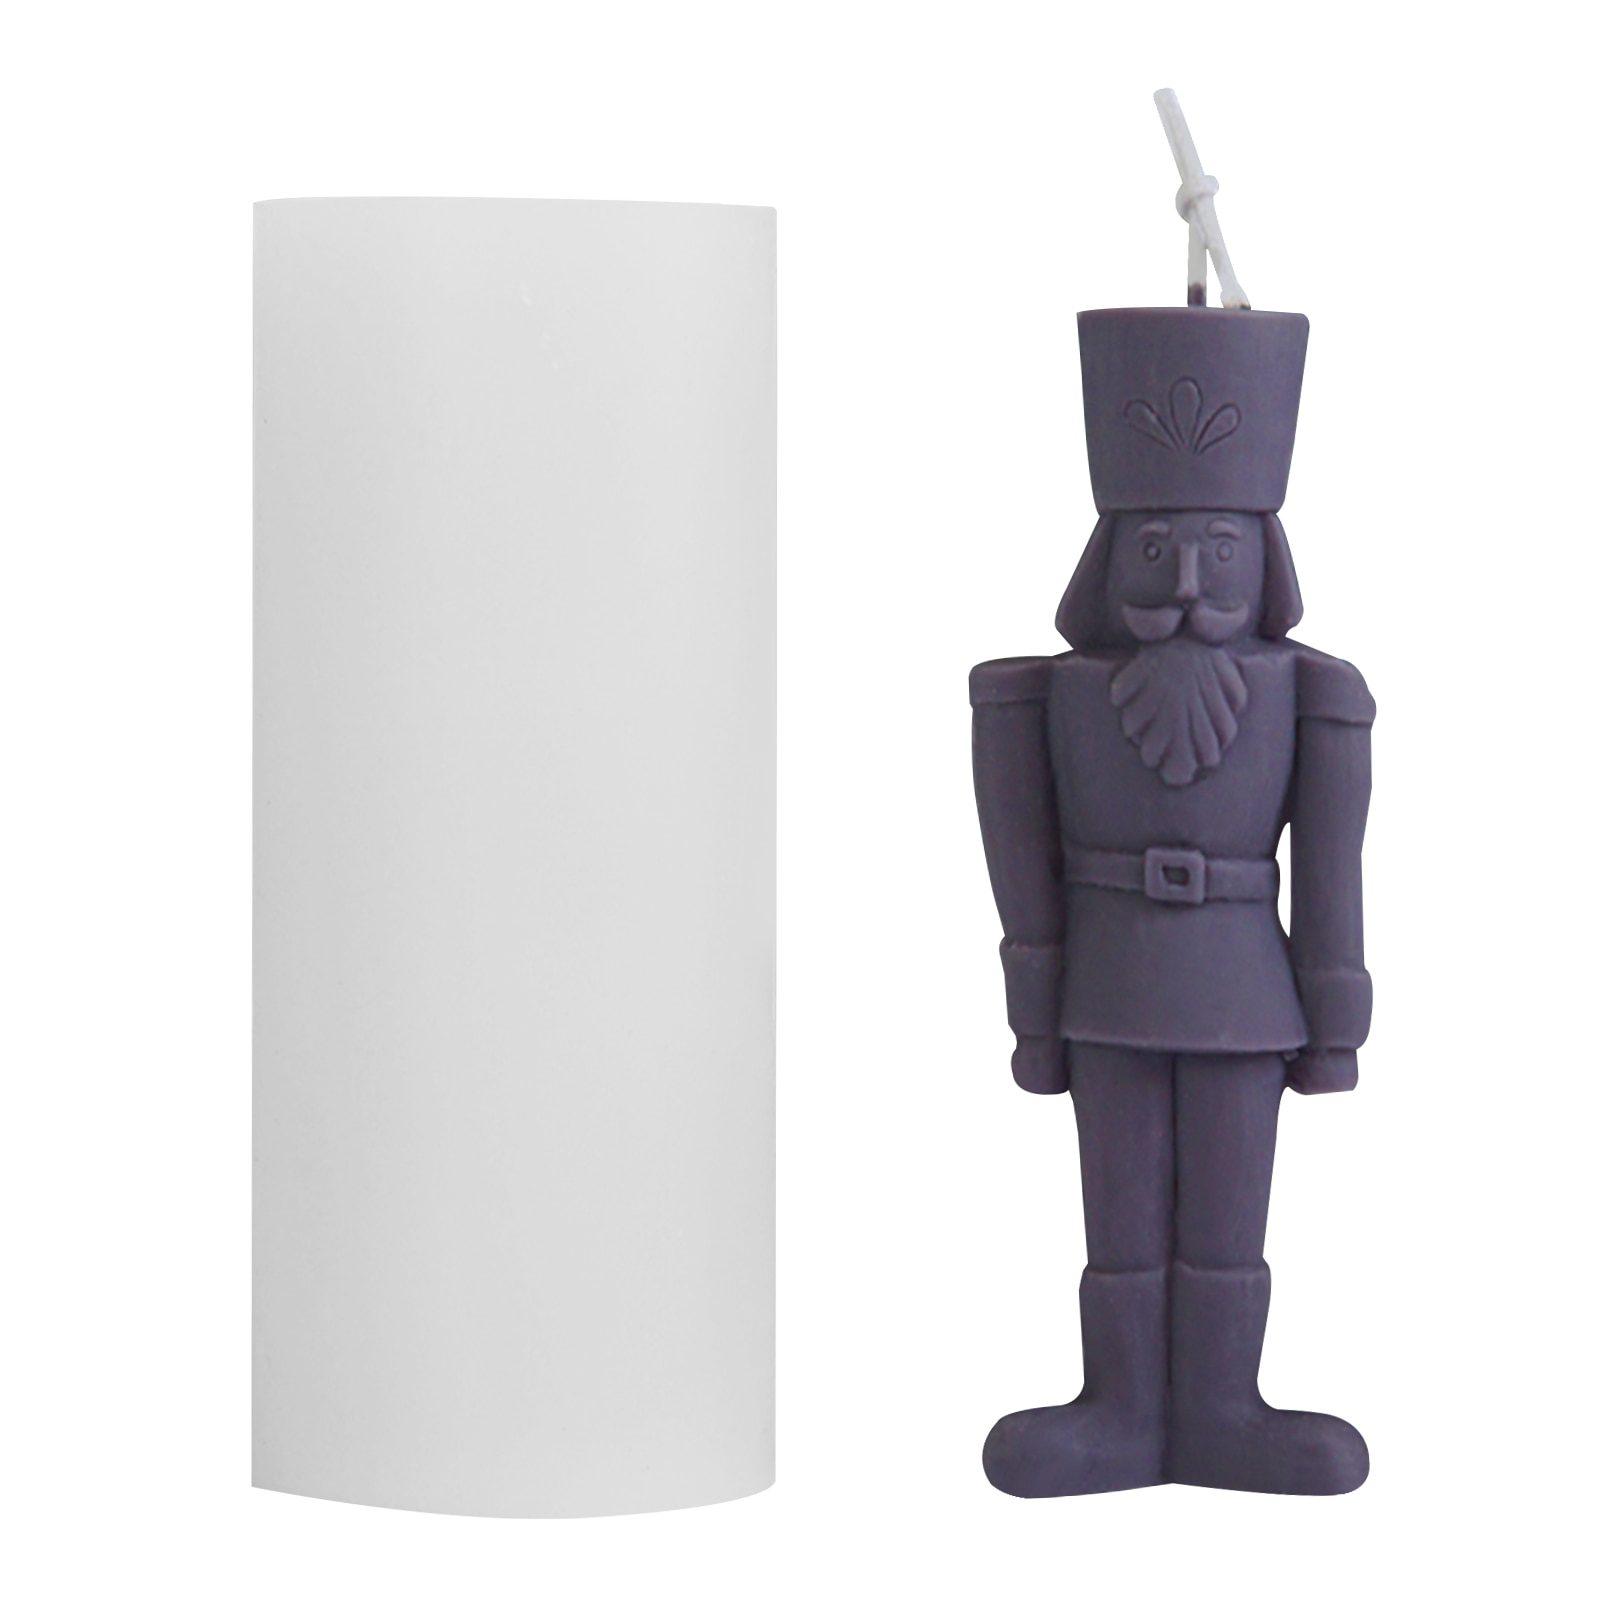 AliExpress - Simplified human form Candle Mold Female Candle Silicone Mold  Nutcracker aromatherapy Shaped Candle Making Wax Plaster Mould